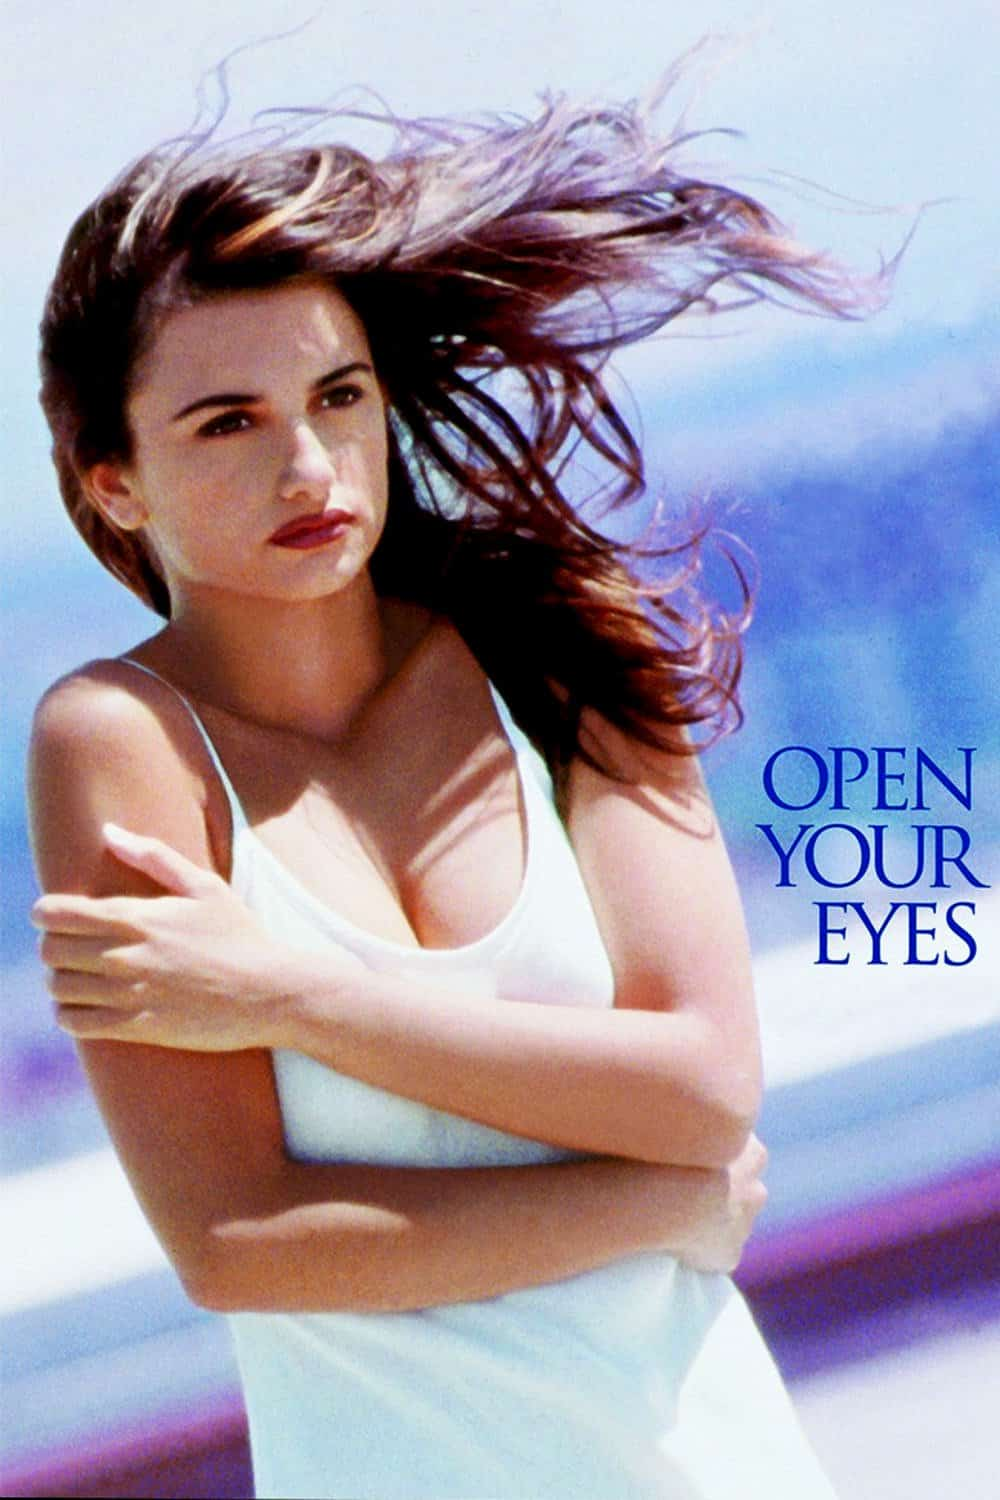 Open Your Eyes, 1997